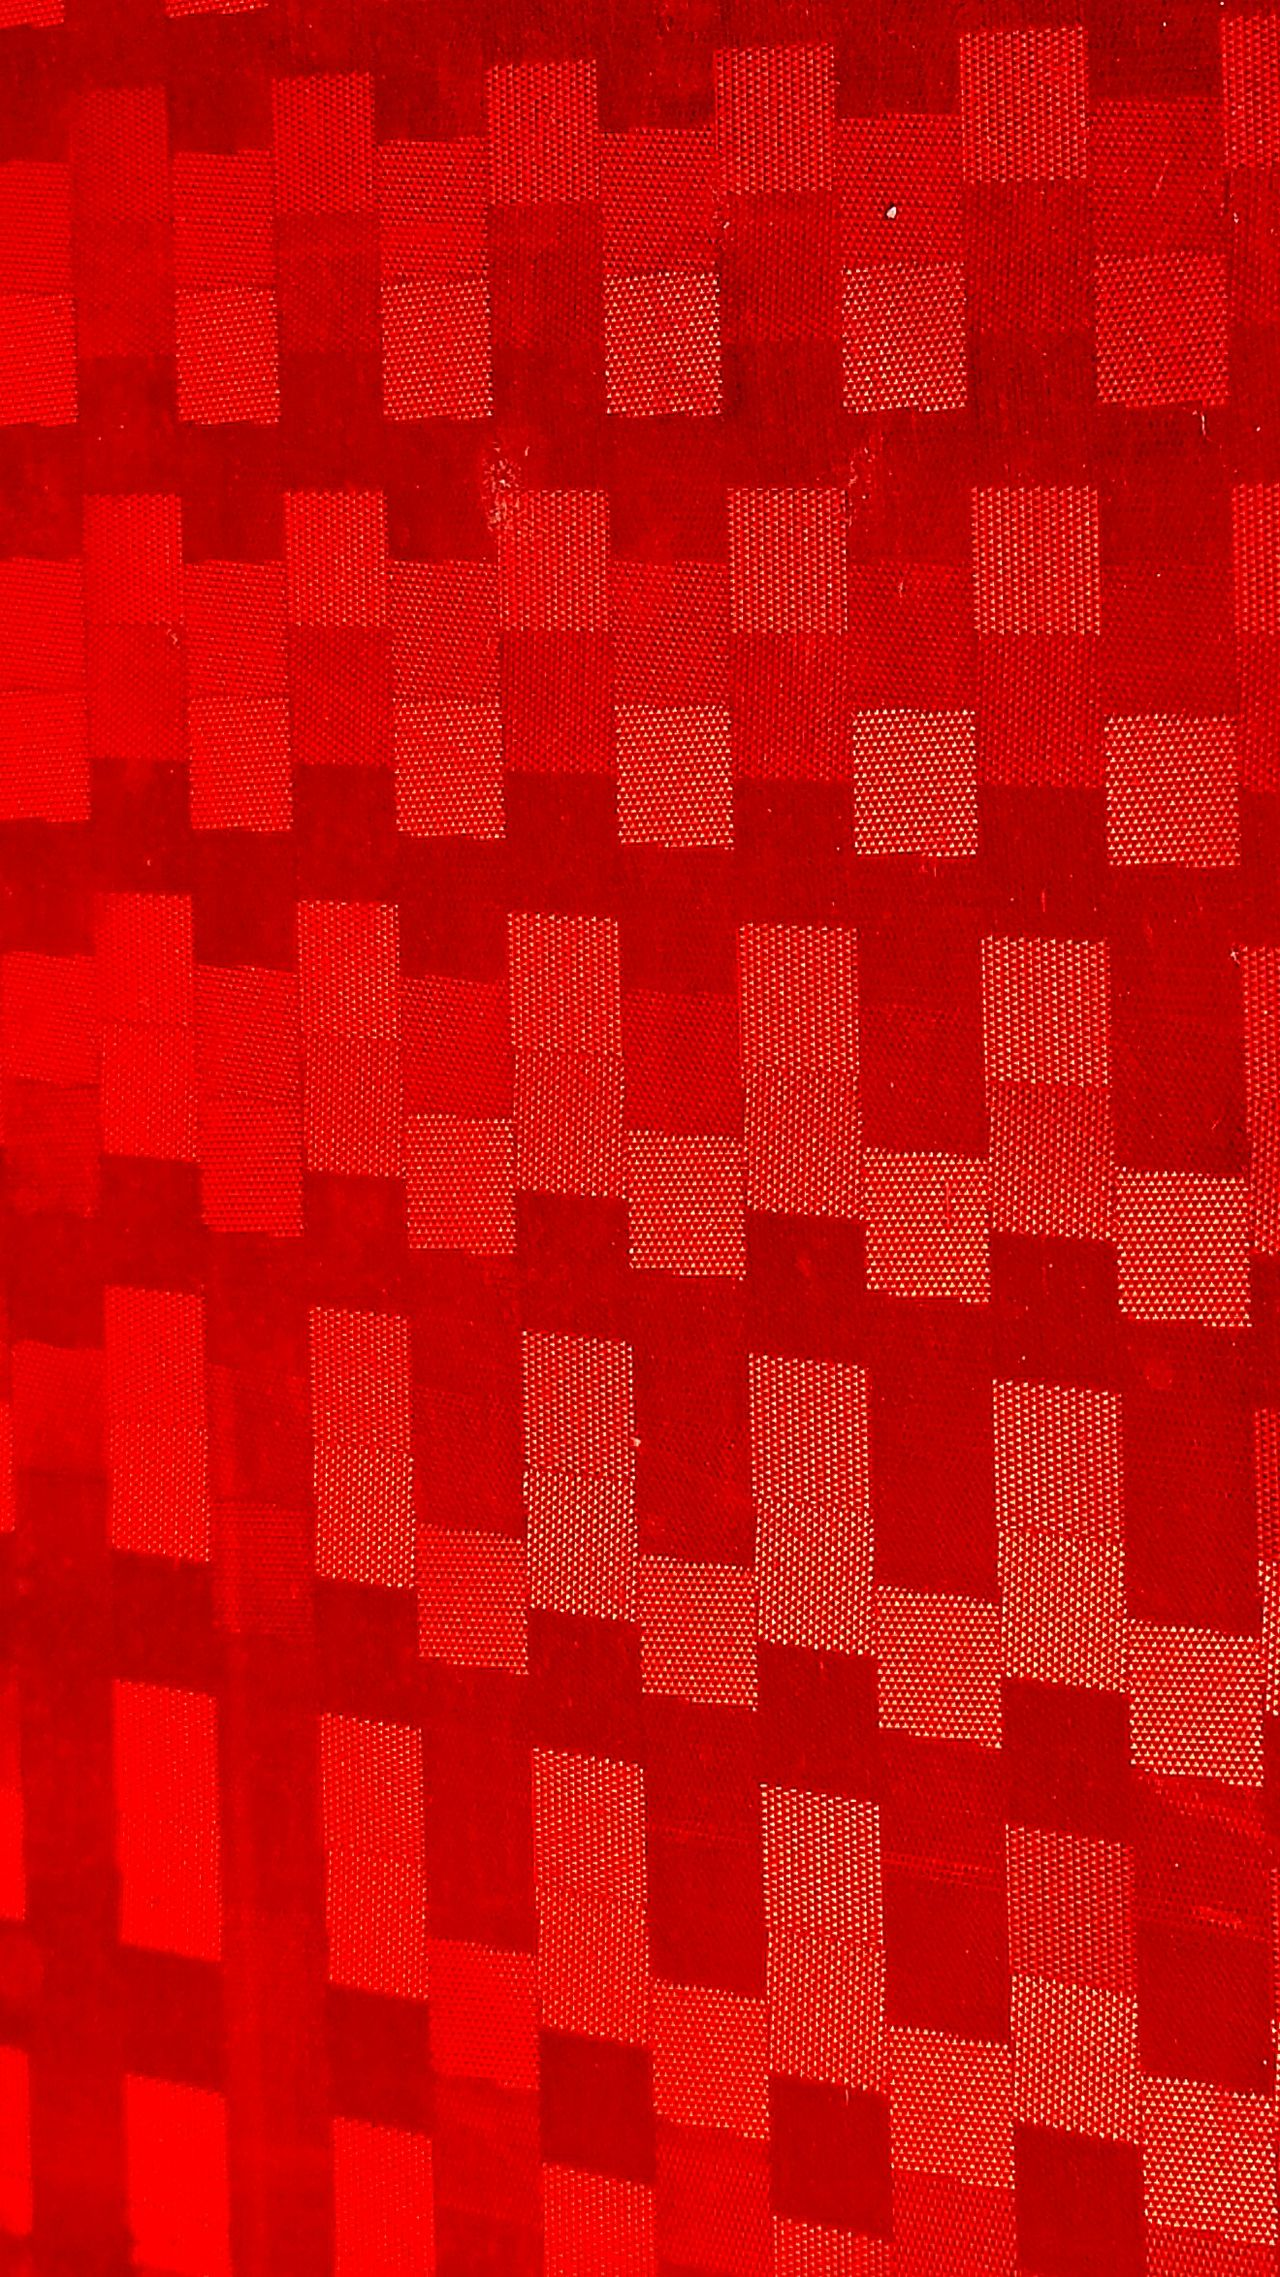 Red reflective tape Bored On A Break Innovating Working Enjoying The View Observing Closeup Urban Filter 4 Creative Light And Shadow Red